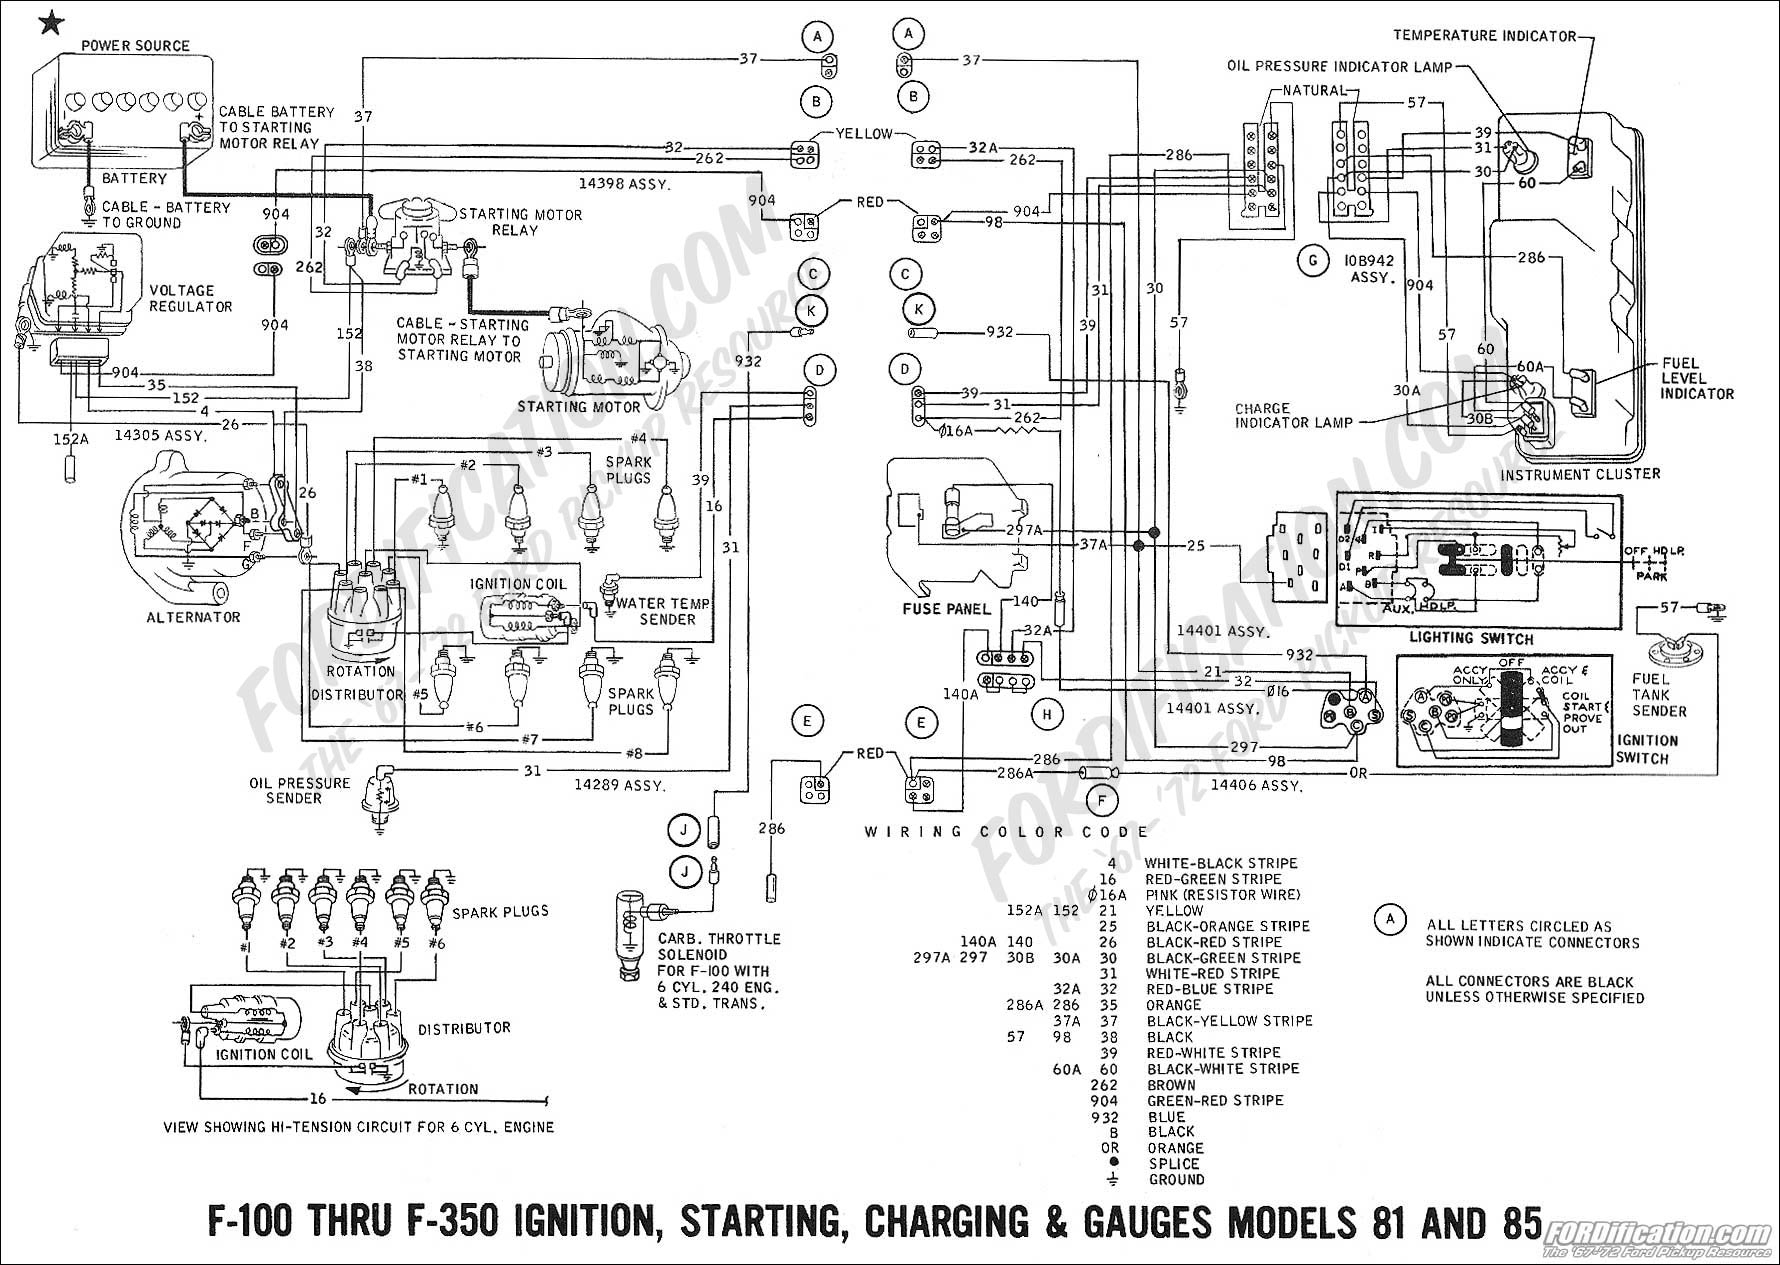 Ford Galaxie Cluster Wiring Diagram | Manual E-Books - Ford Wiring Diagram